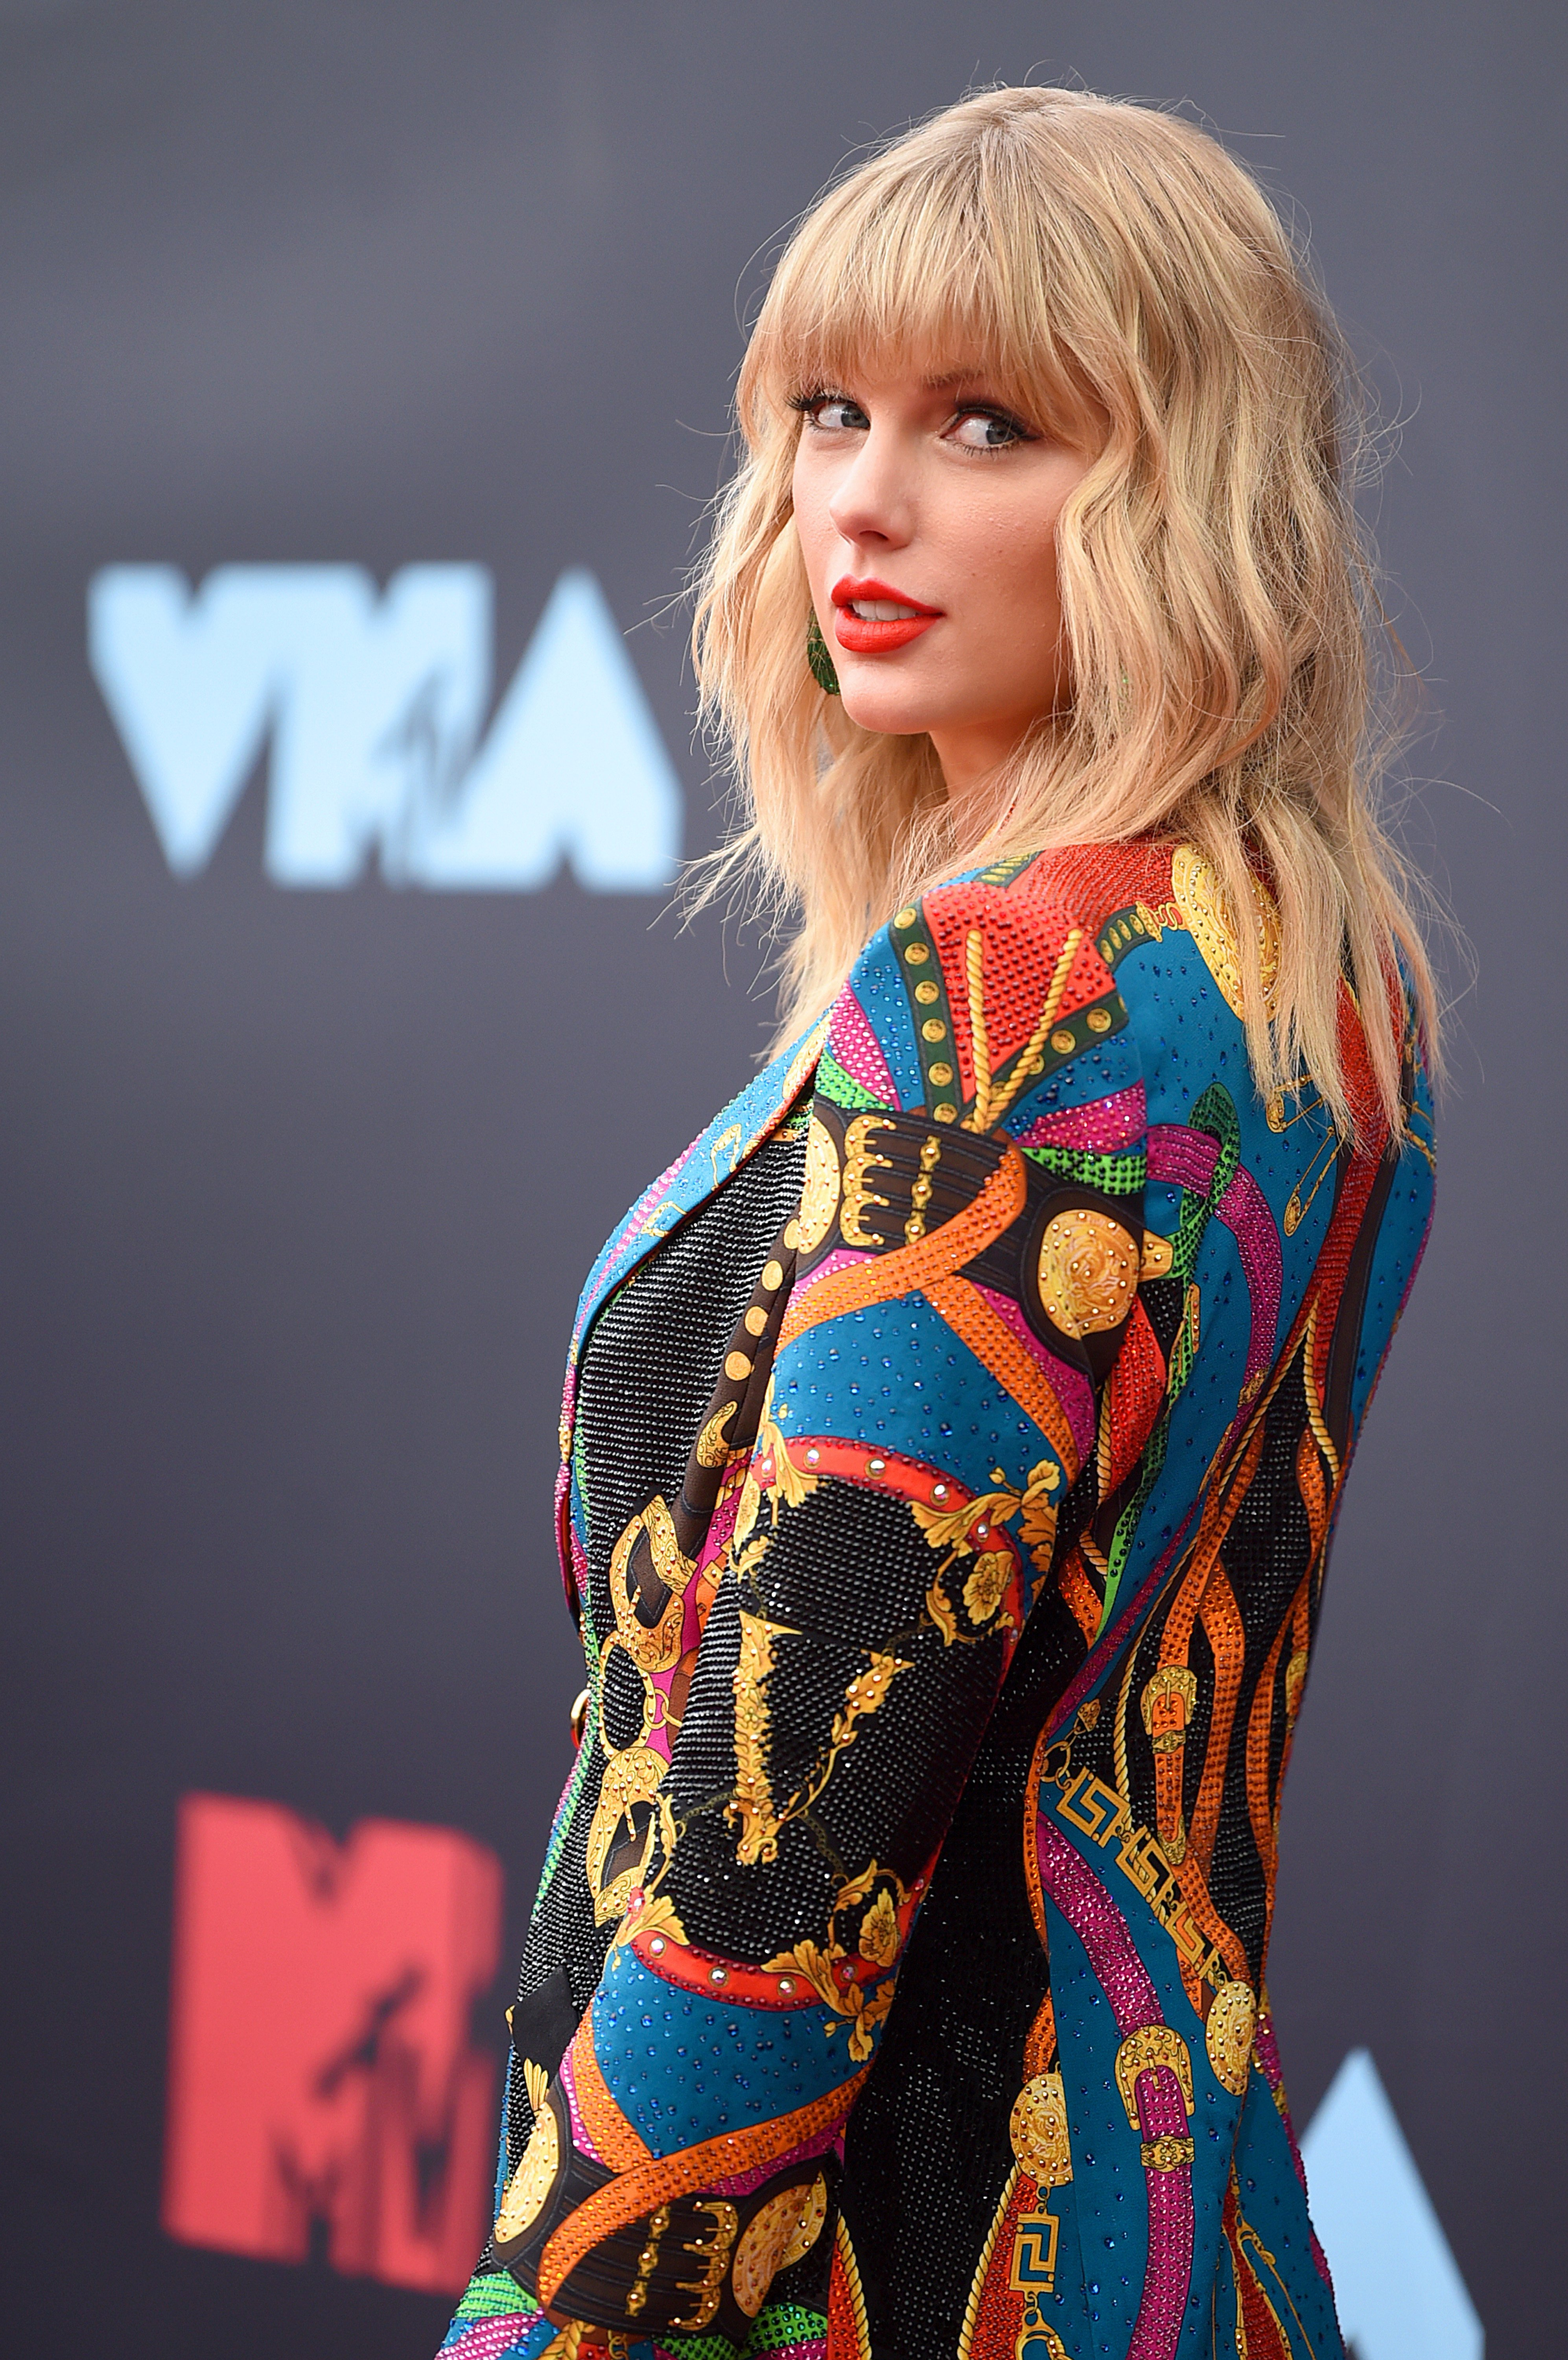 Taylor Swift during the 2019 MTV Music Awards. | Source: Getty Images